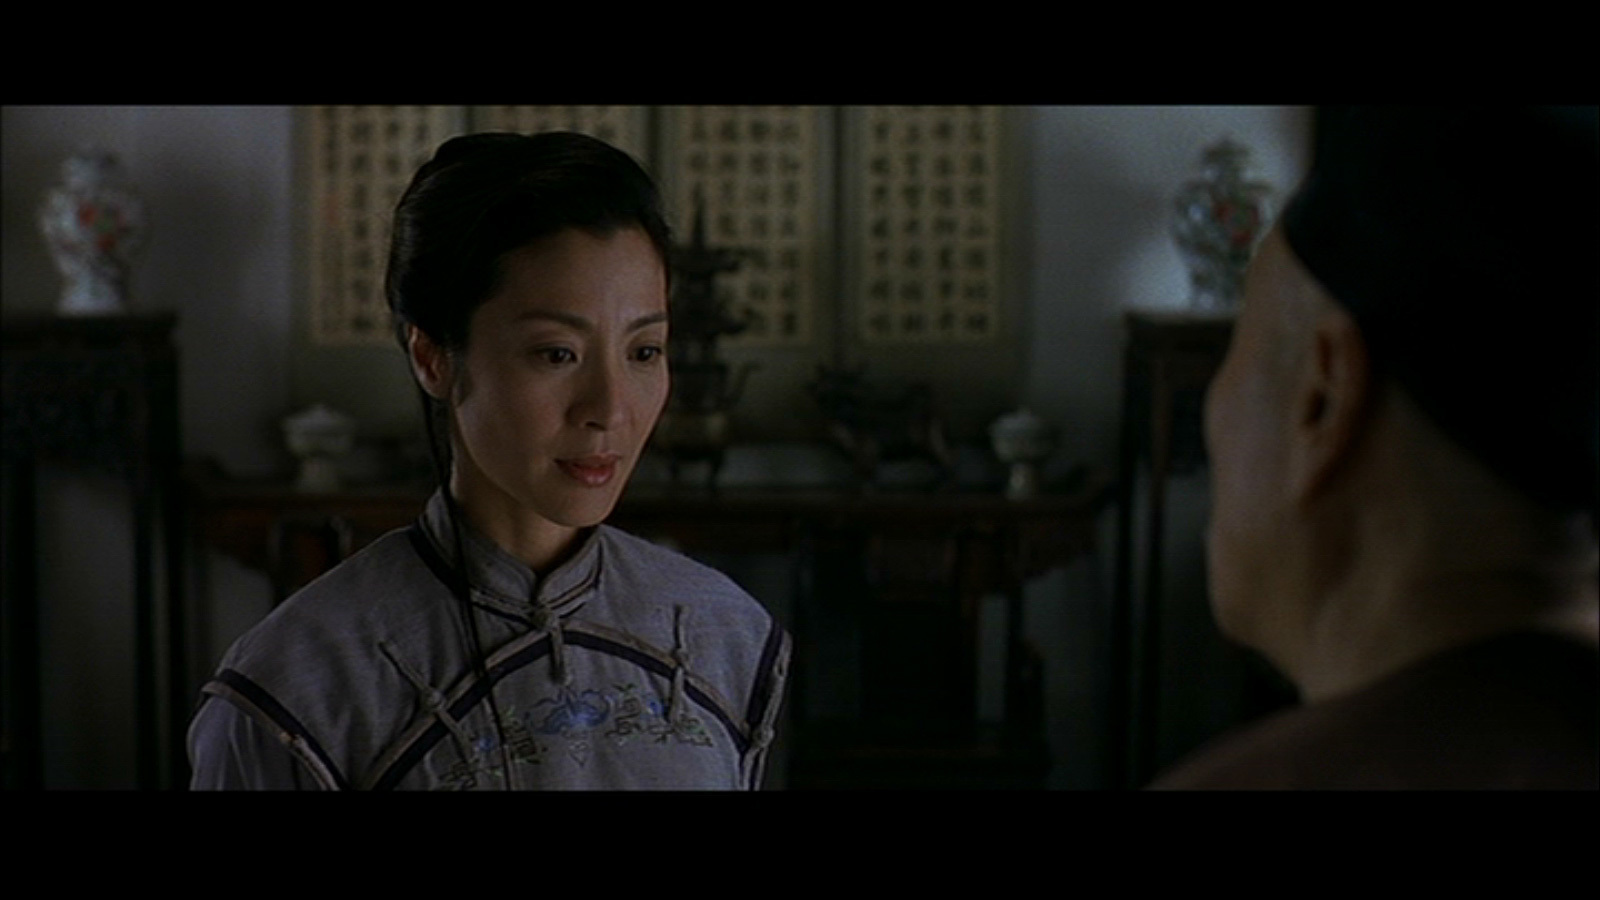 the hidden dragon 1 doc Crouching tiger, hidden dragon (simplified chinese: 卧虎藏龙 traditional chinese: 臥虎藏龍) is a 2000 wuxia film, conceived and directed by ang leeit features an international cast of chinese actors, including chow yun-fat, michelle yeoh, zhang ziyi and chang chen.